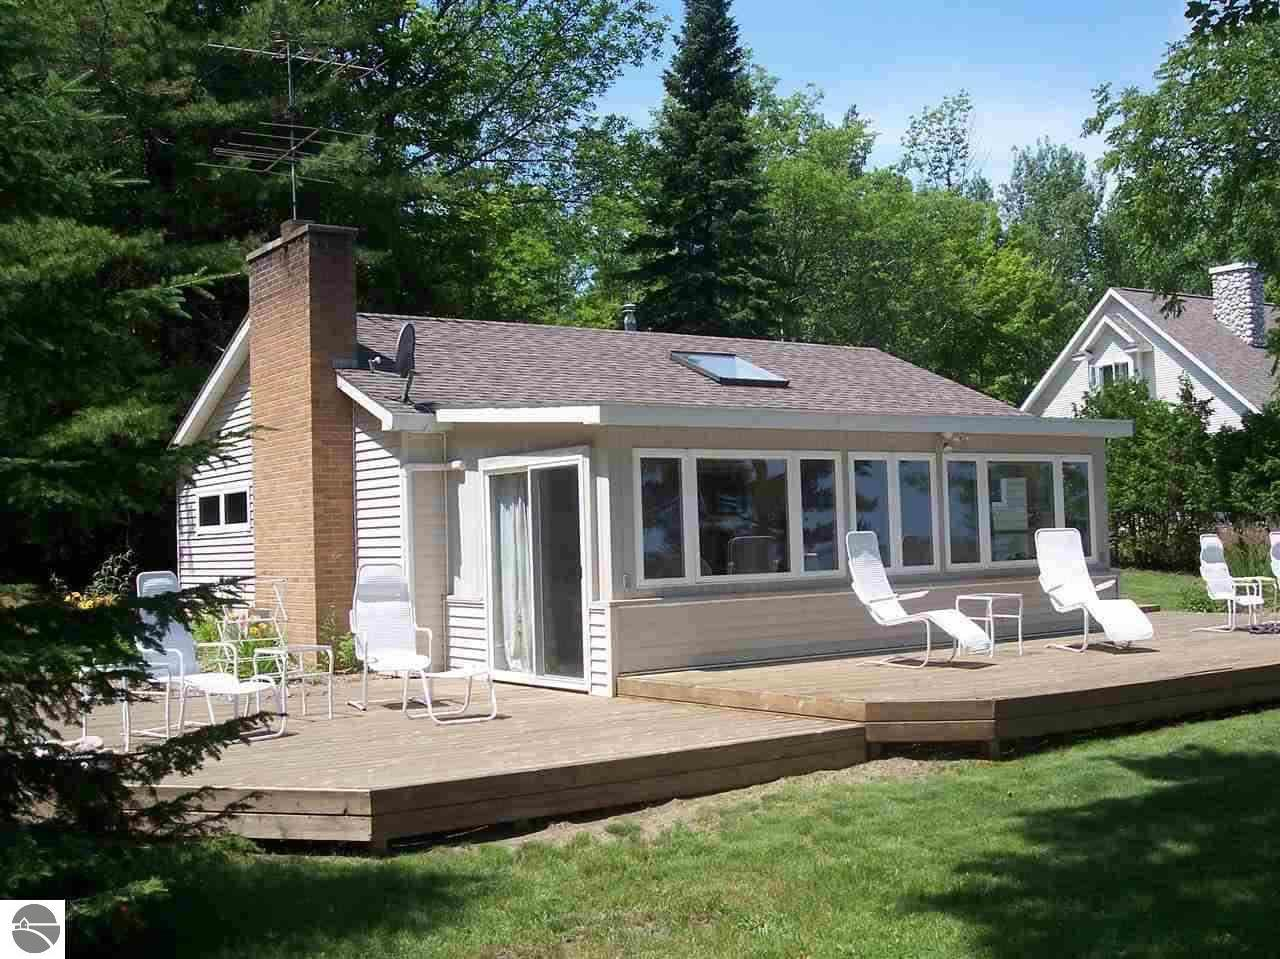 Michigan leelanau county northport 49670 - Property For Sale At 8830 N Dawn Haven Road Northport Mi 49670